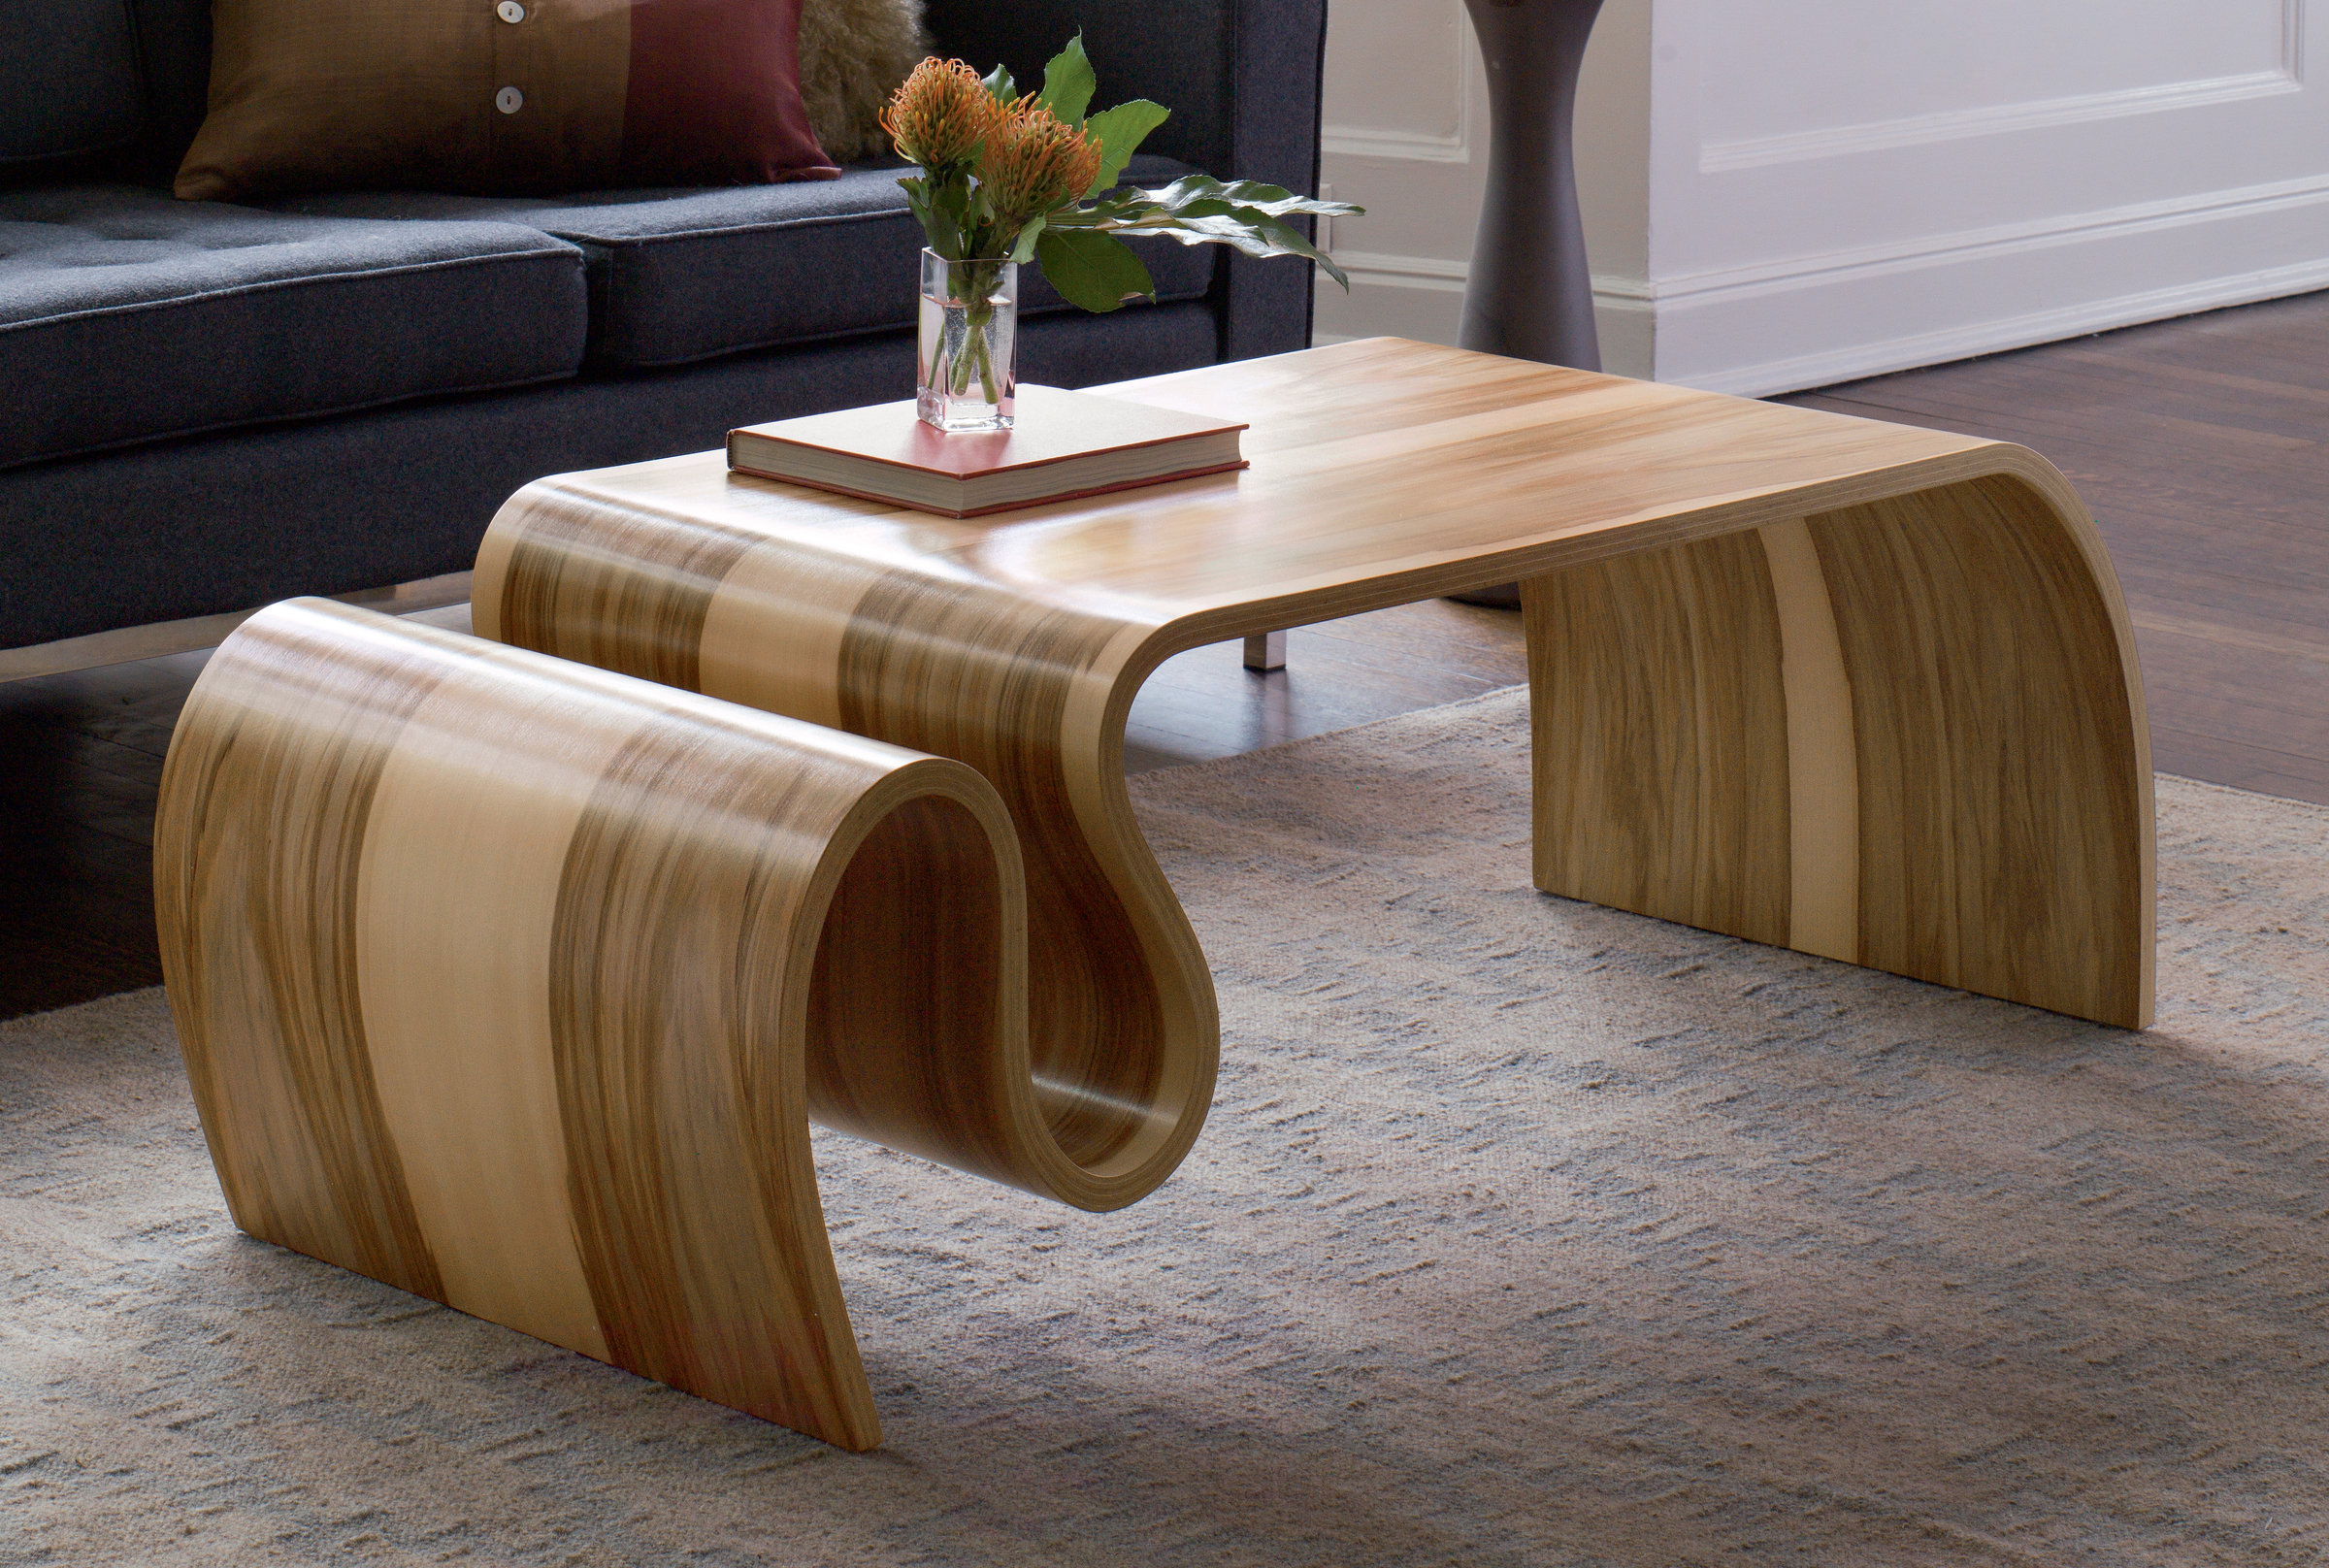 Crazy Carpet Table By Kino Guerin Wood Coffee Table Coffee